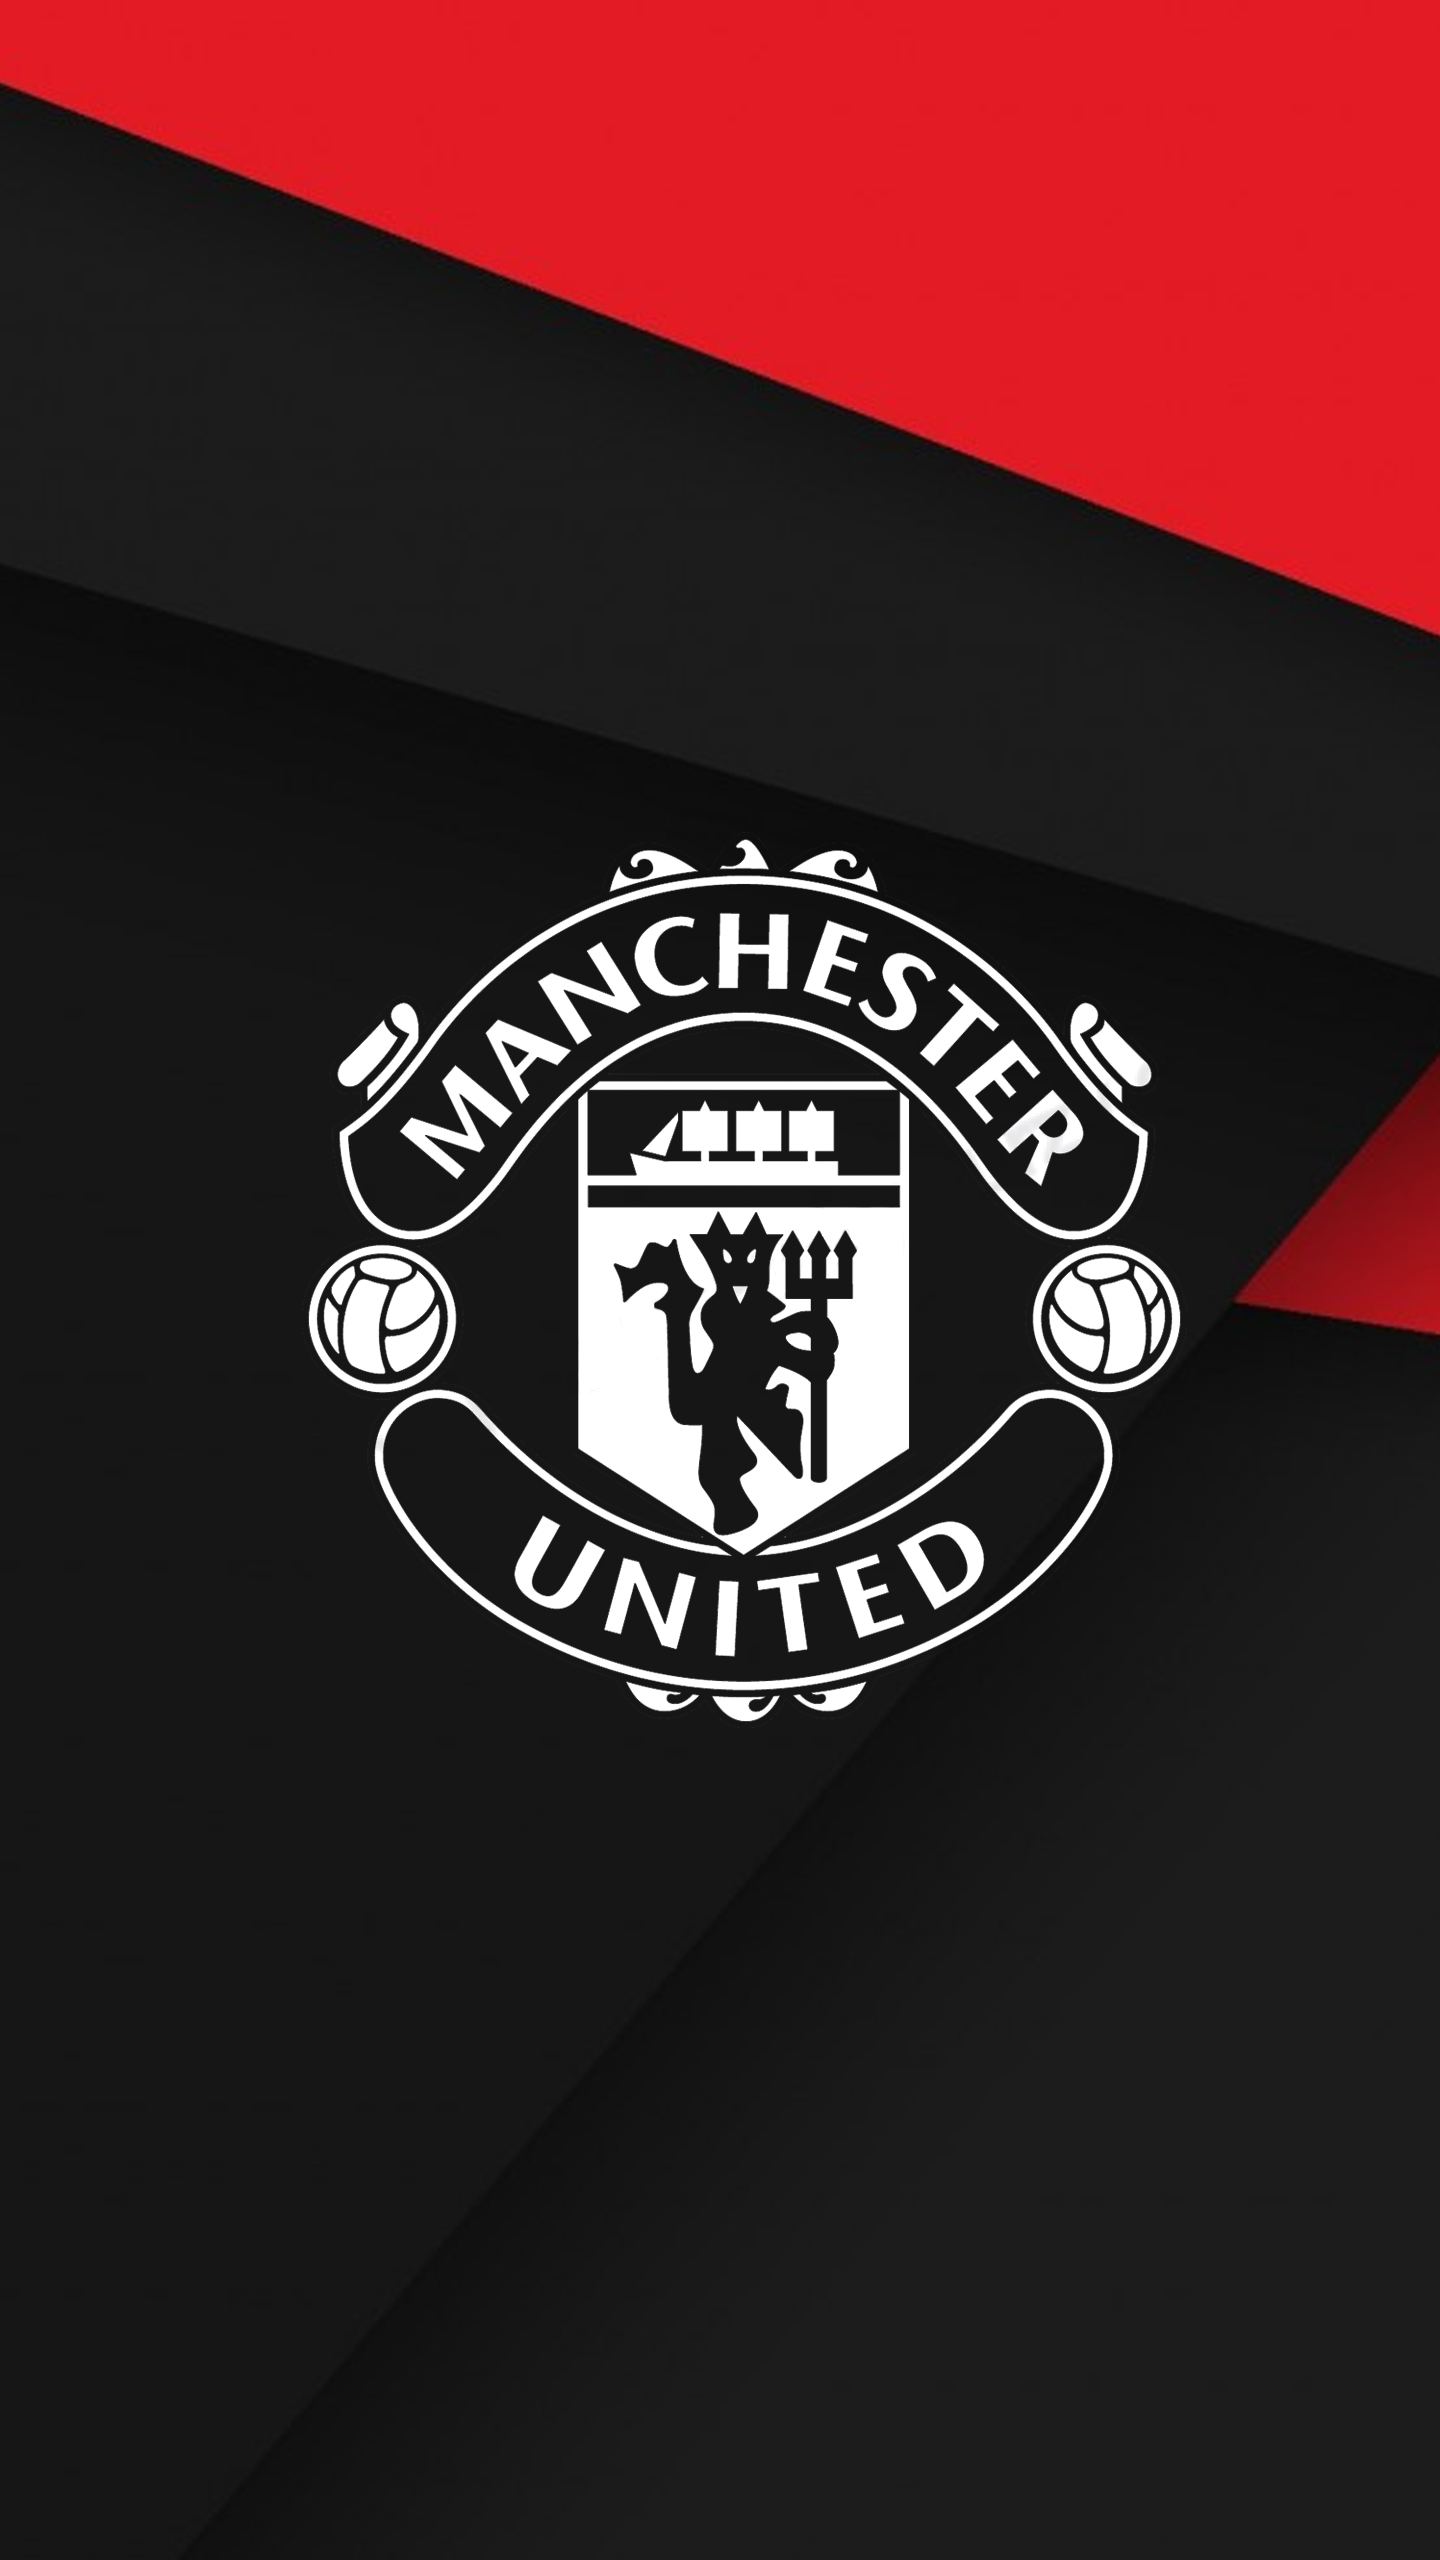 Innovative Picture design Ideas Inspired by Manchester United Football Club